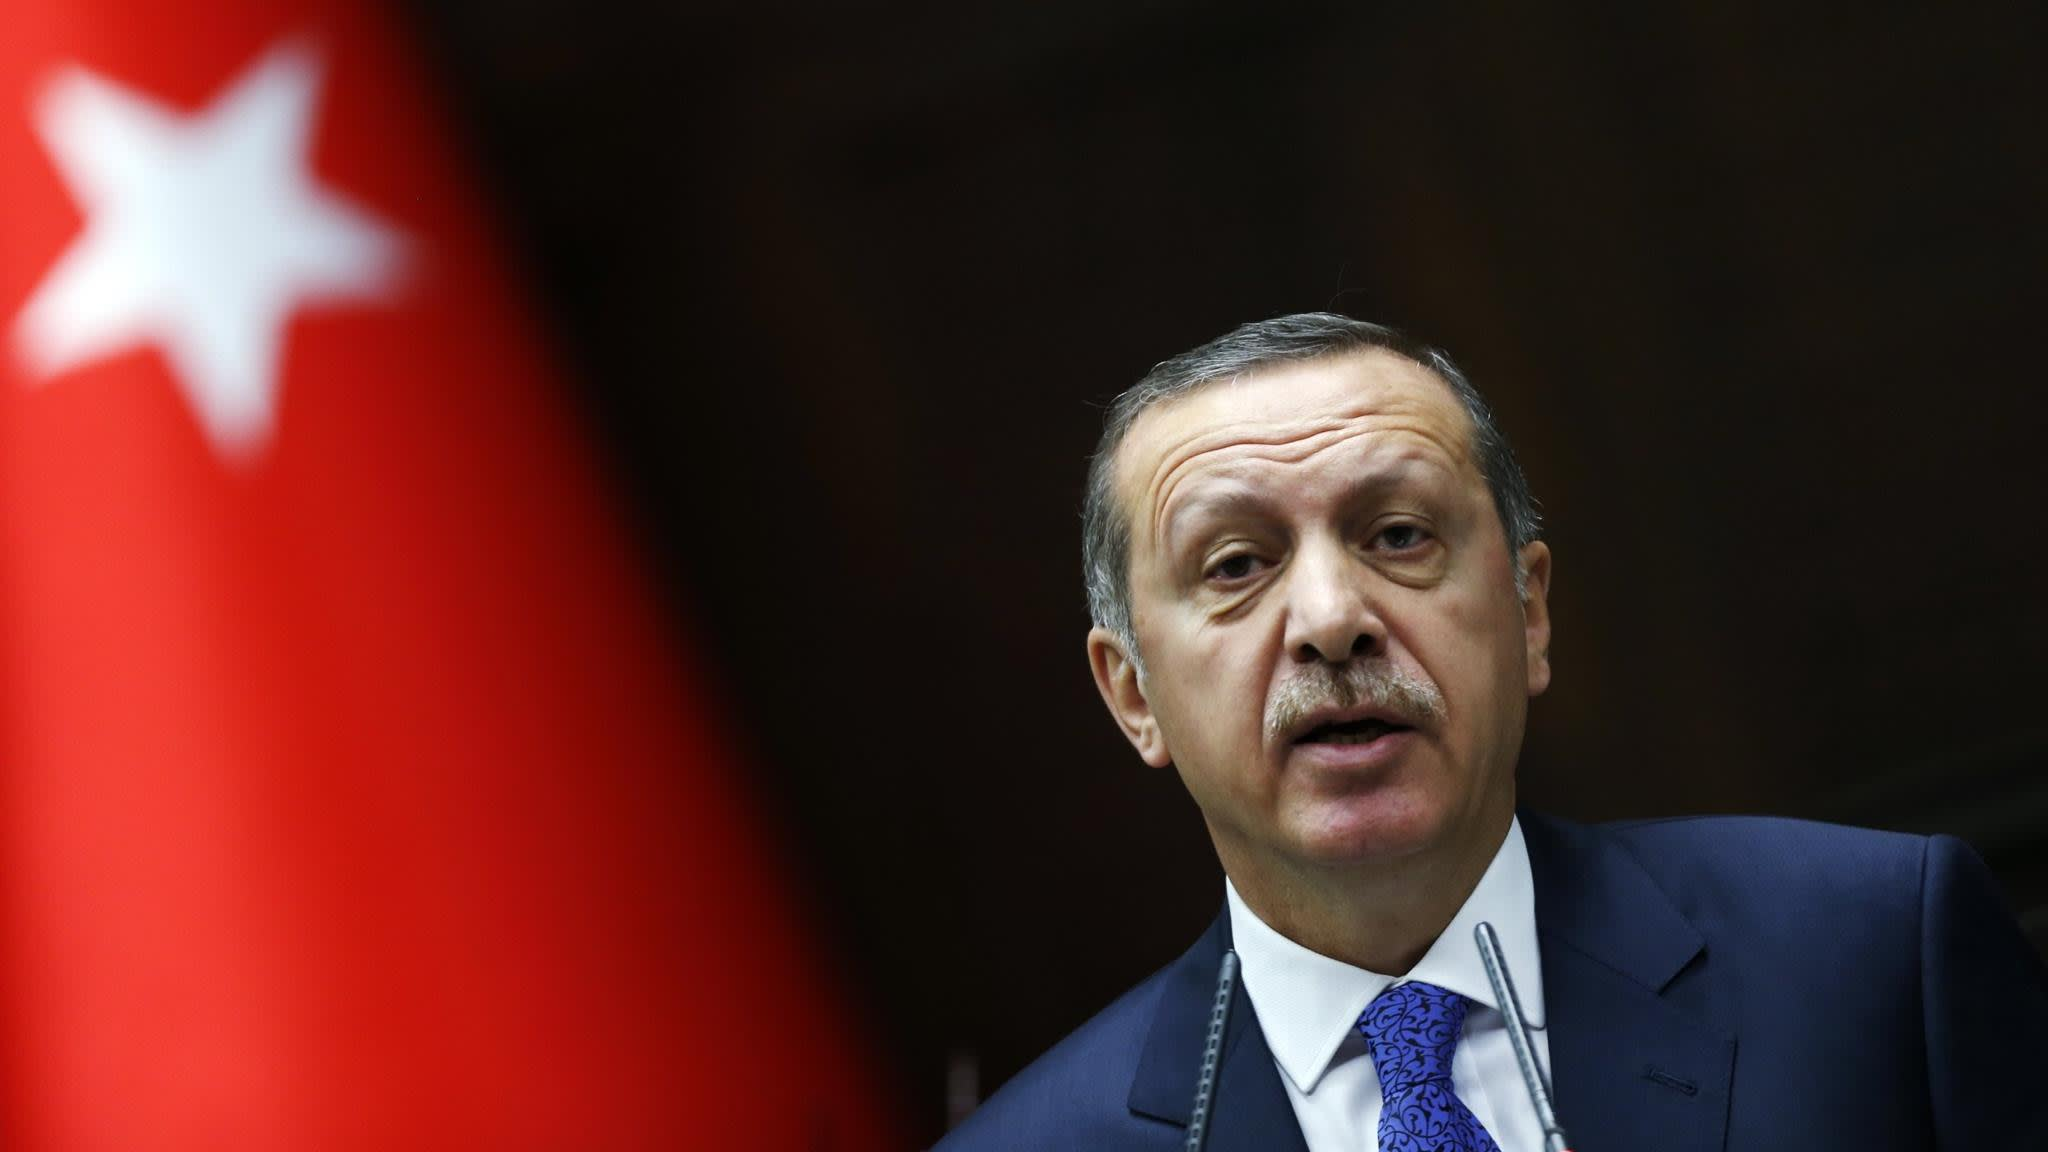 Erdogan weighs Turkish ban against Facebook and YouTube   Financial Times